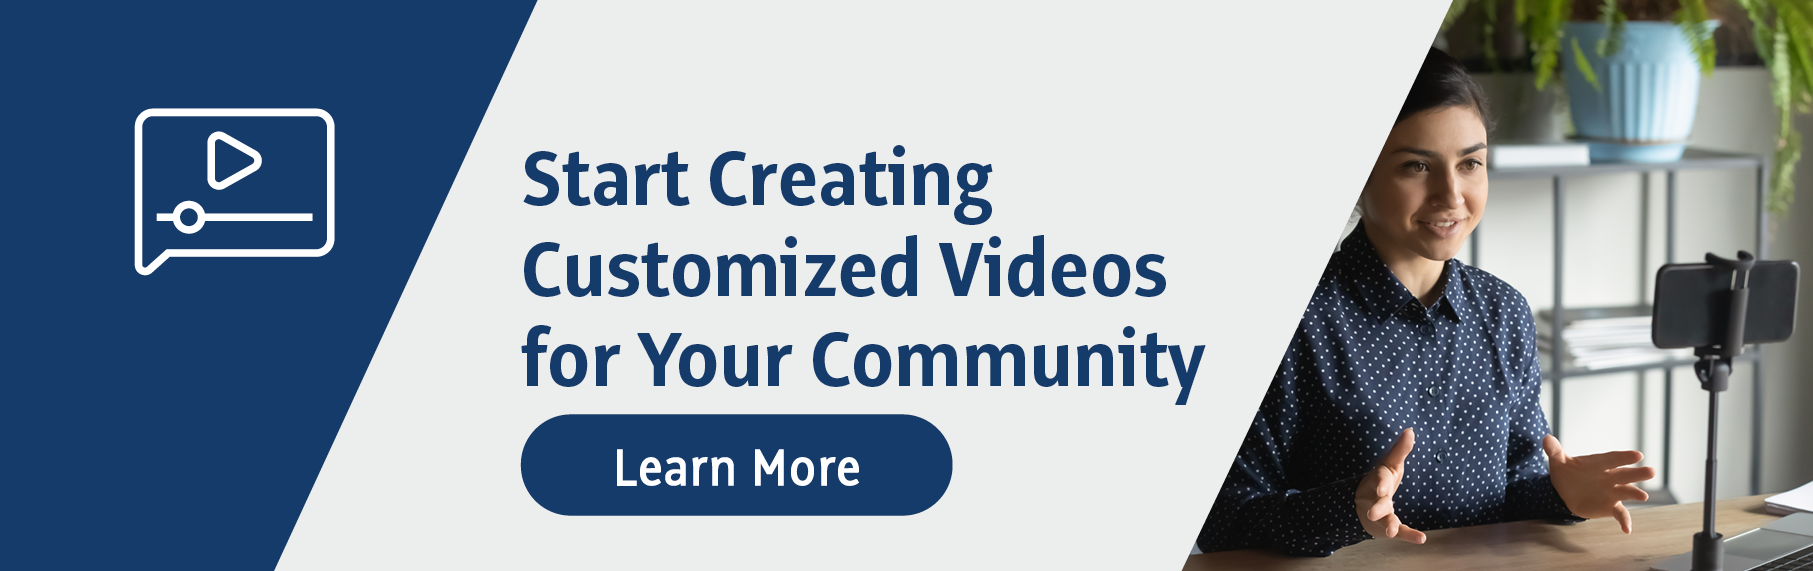 Select here to start creating customized videos for your community!